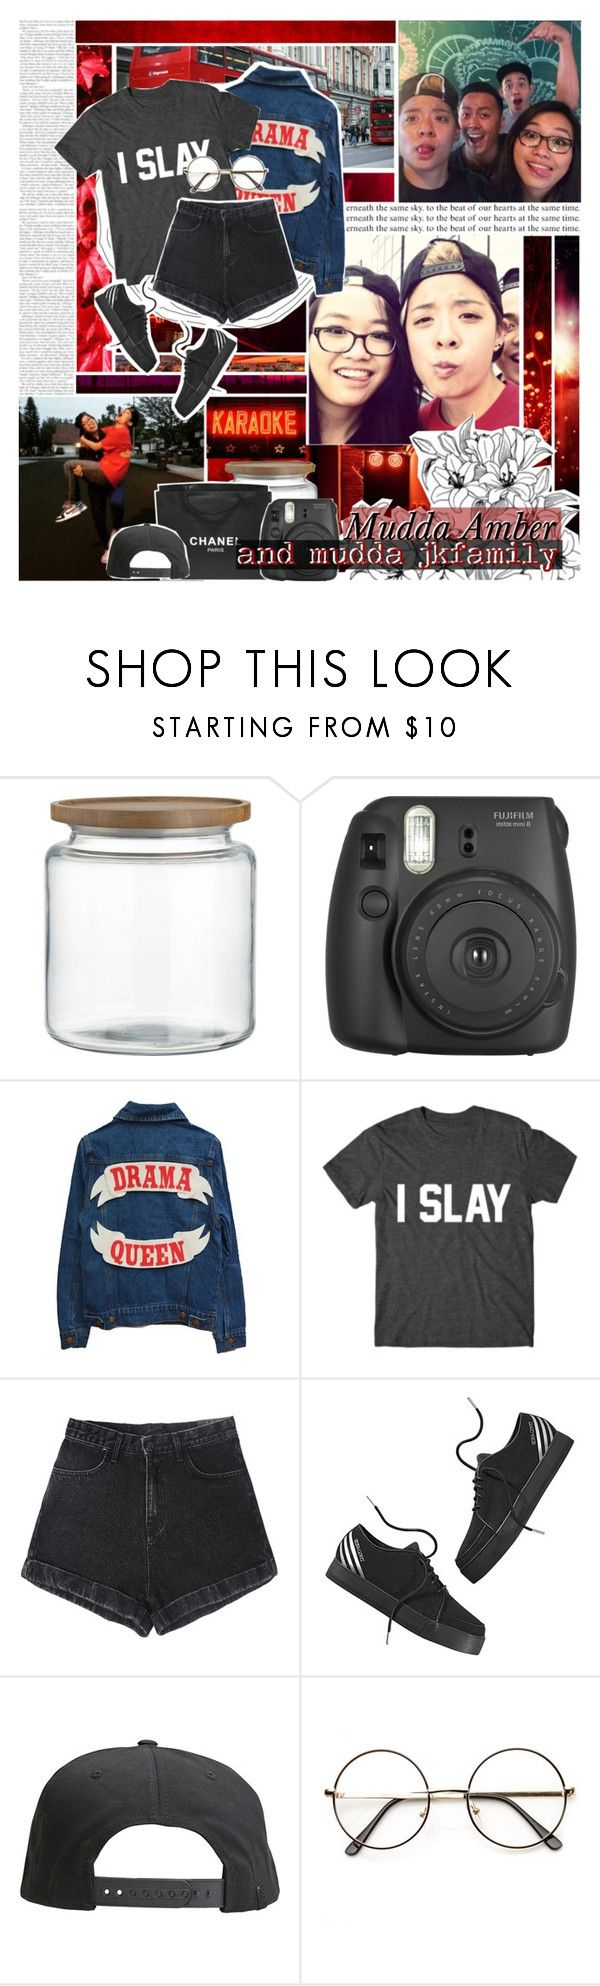 """ 21. Mudda Amber and JkFamily "" by pinkmon ❤ liked on Polyvore featuring Crate and Barrel, Chanel, adidas NEO, Tavik Swimwear, red, amberliu and jkfamily"